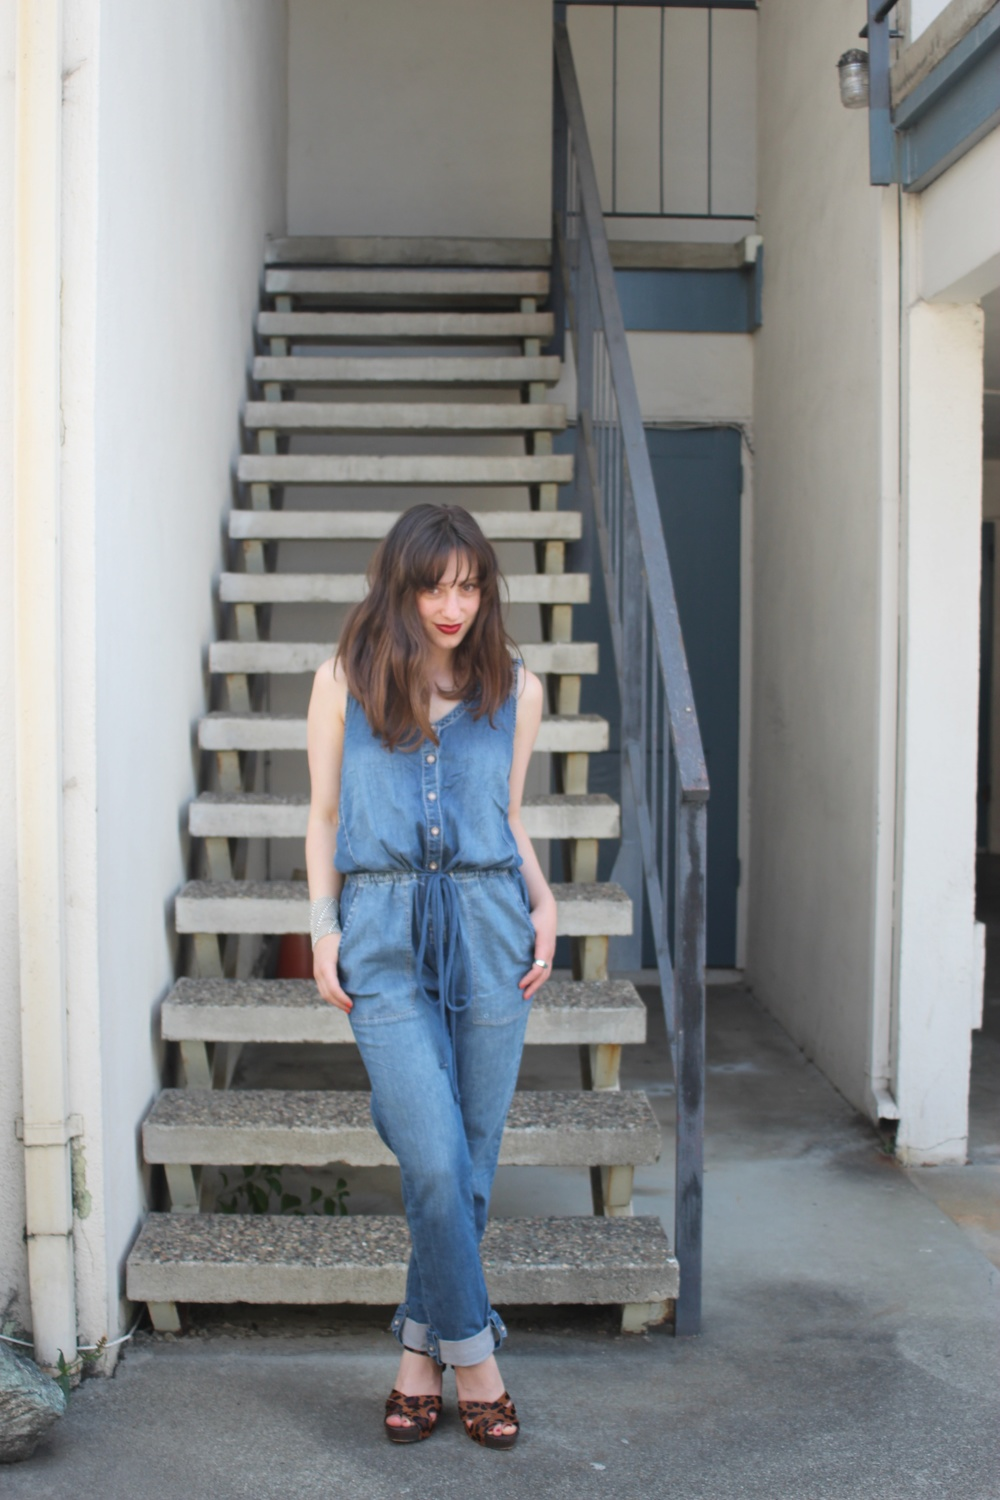 Overalls: Anthropologie, Wedges: Sam Edelman, Bracelet: Liquid Metal Jewelry